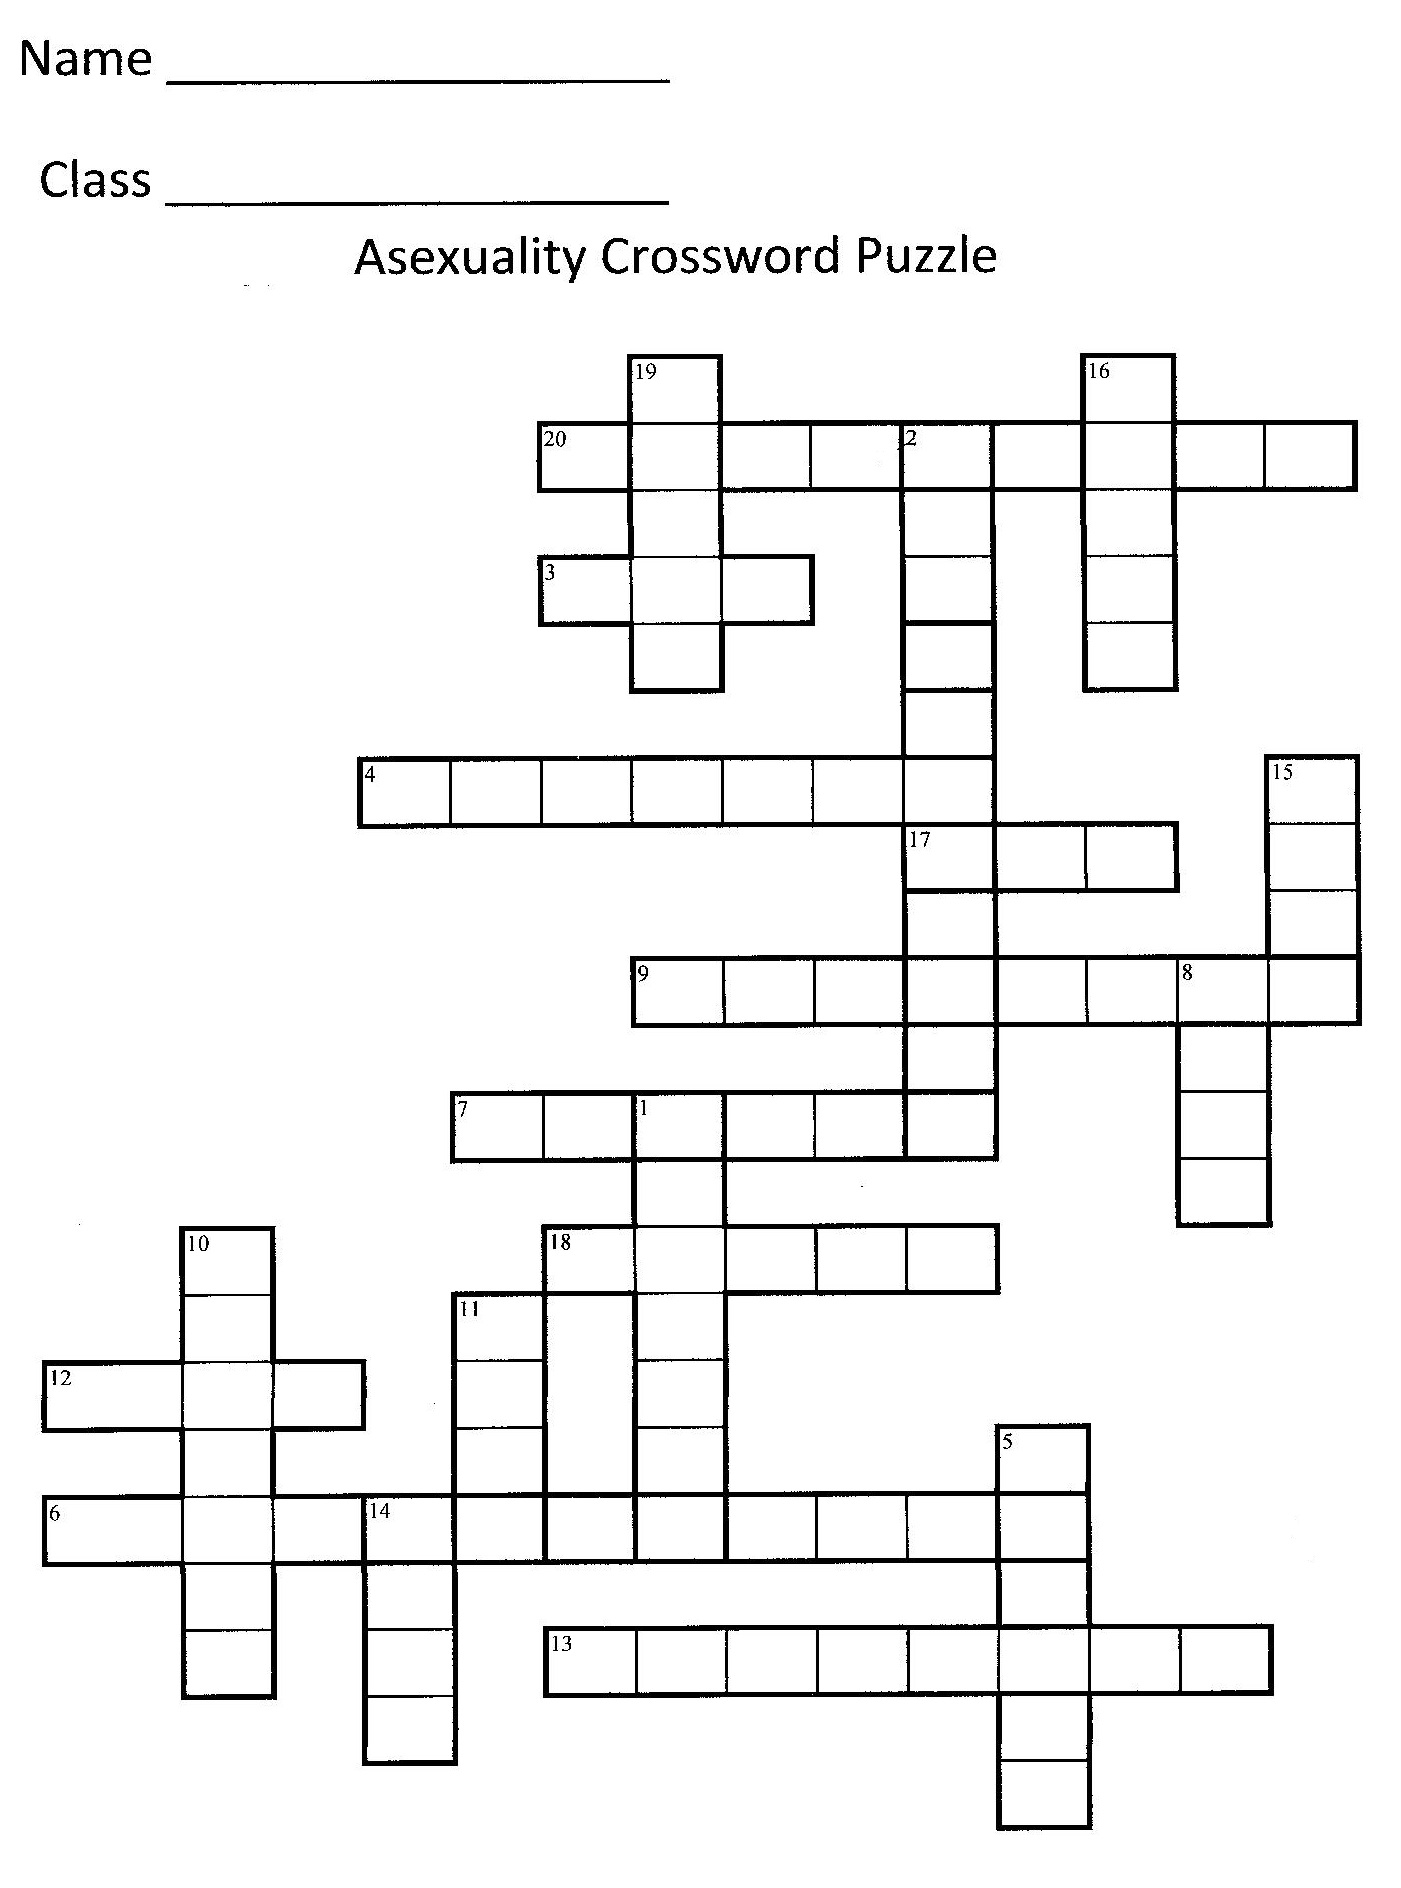 Make your own sex crossword puzzle